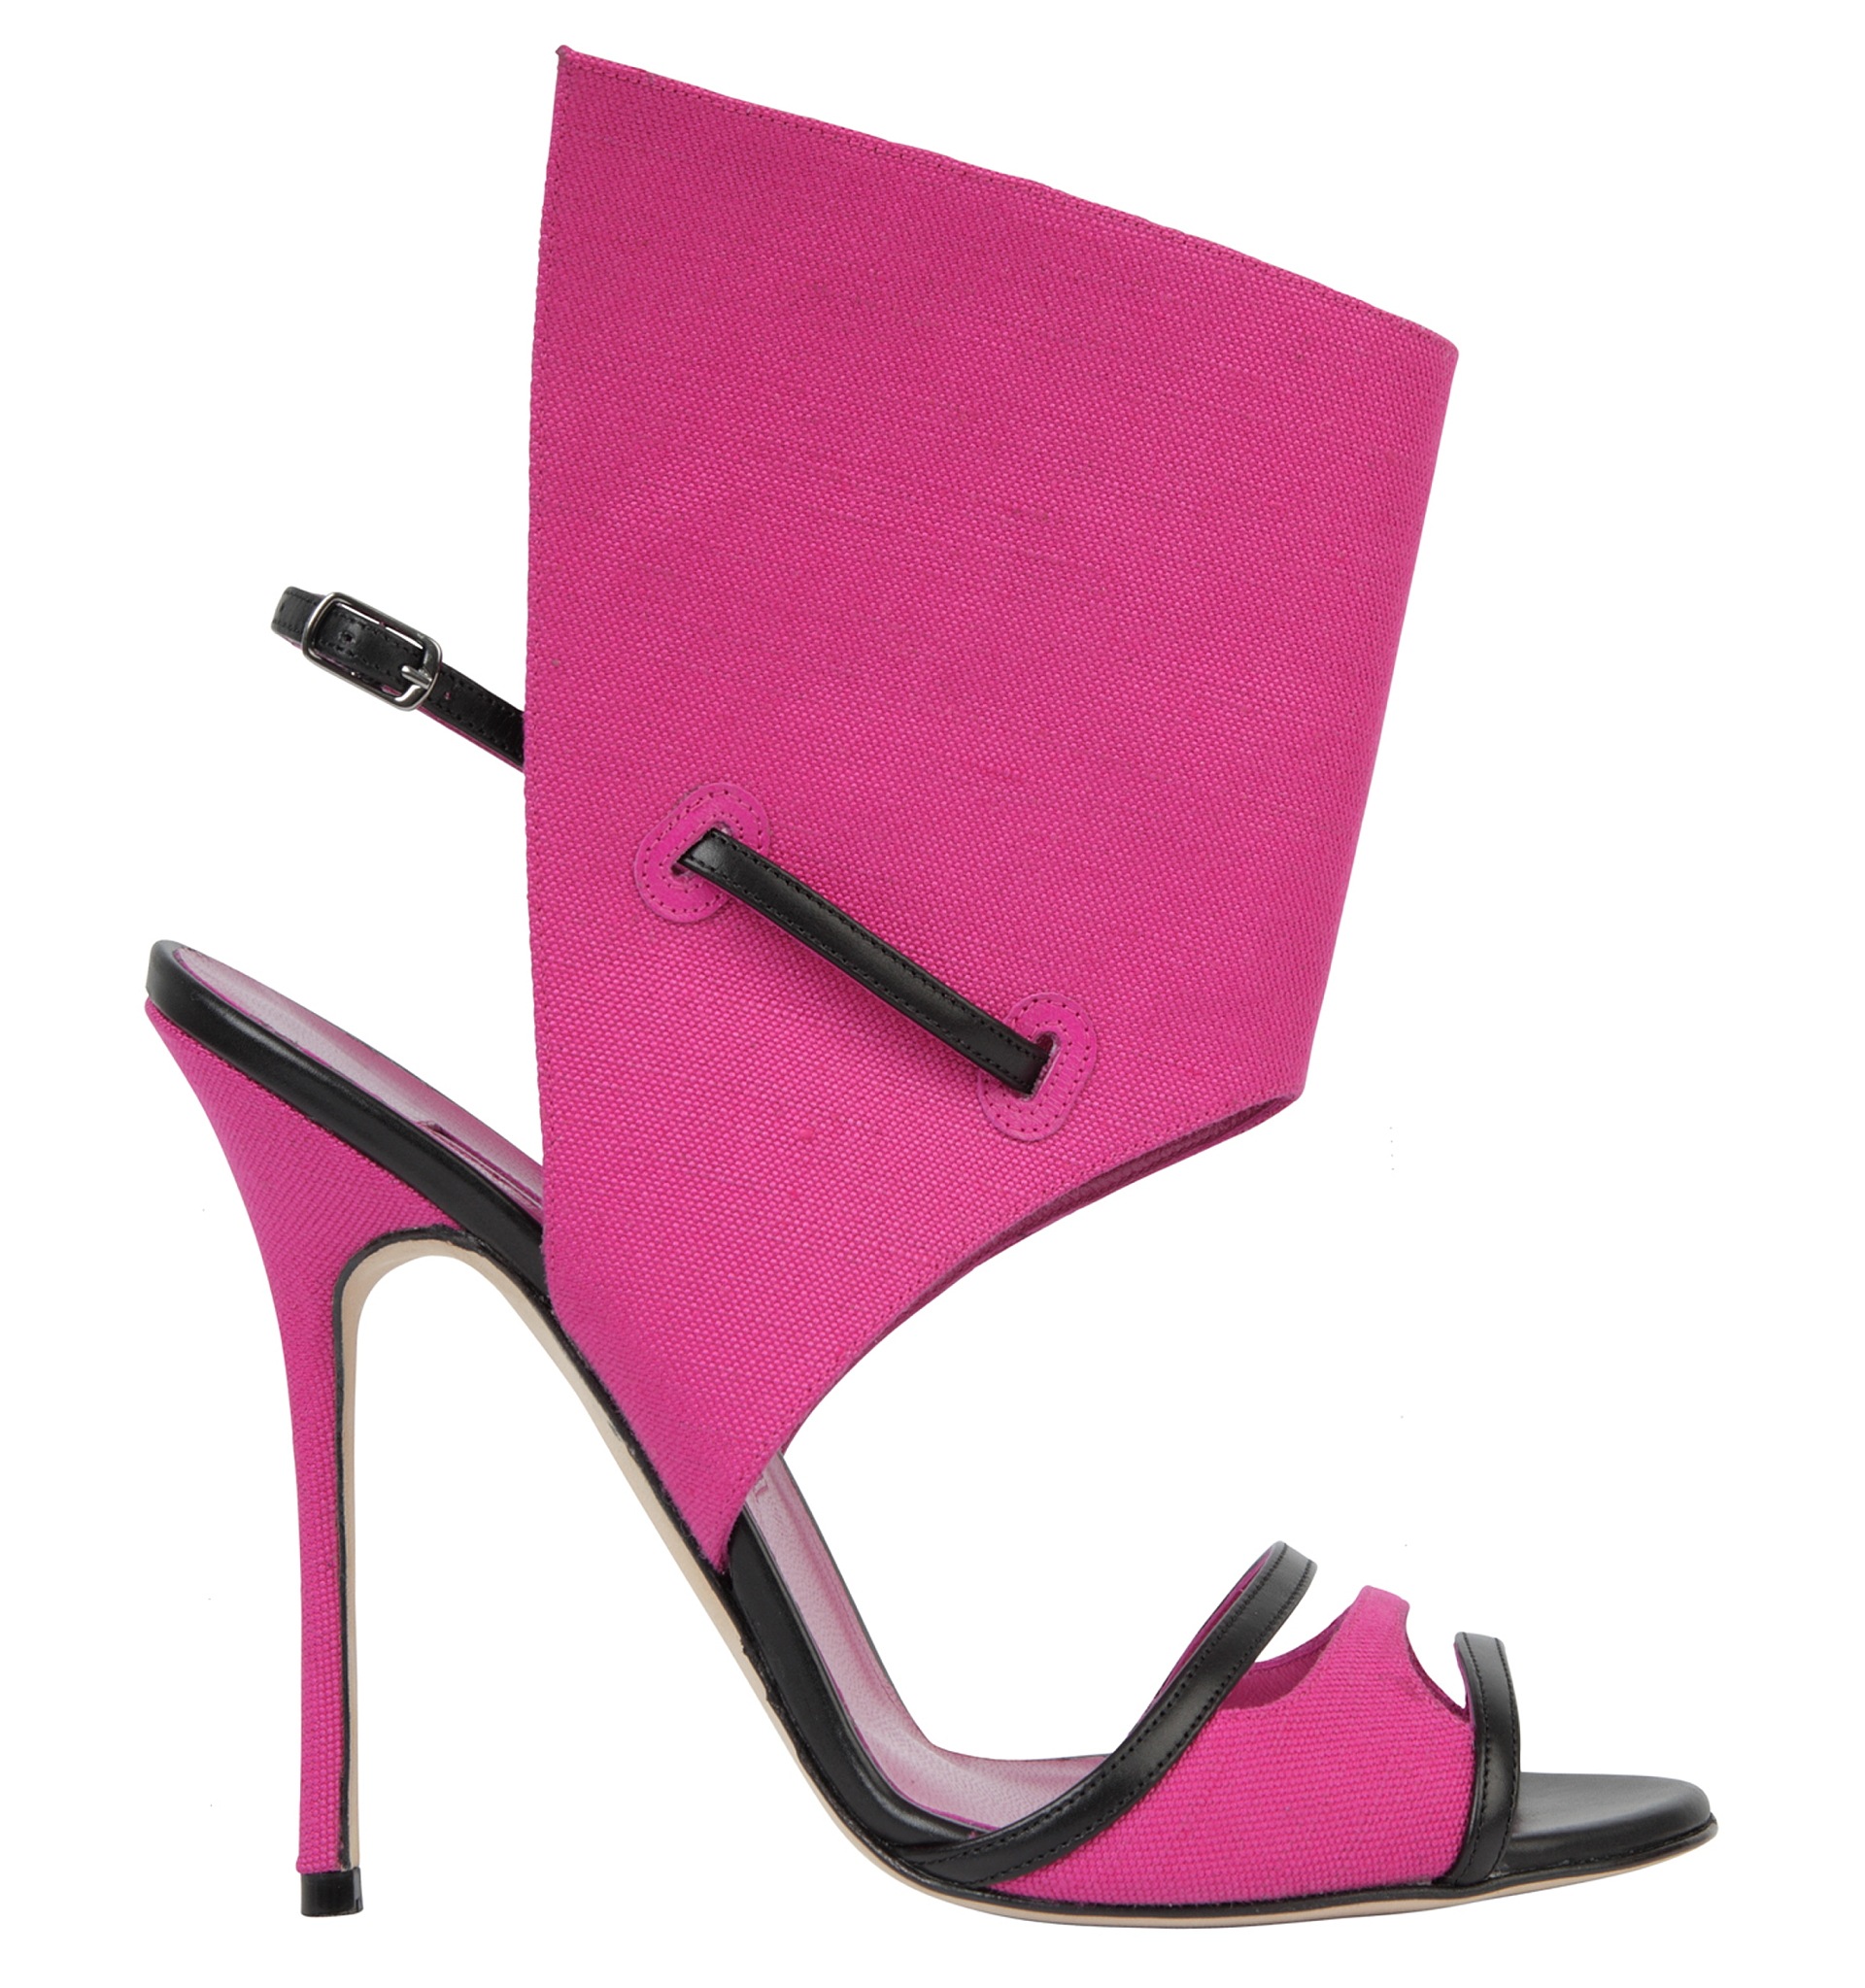 Mostra Manolo Blahnik The Art of Shoes in Milan